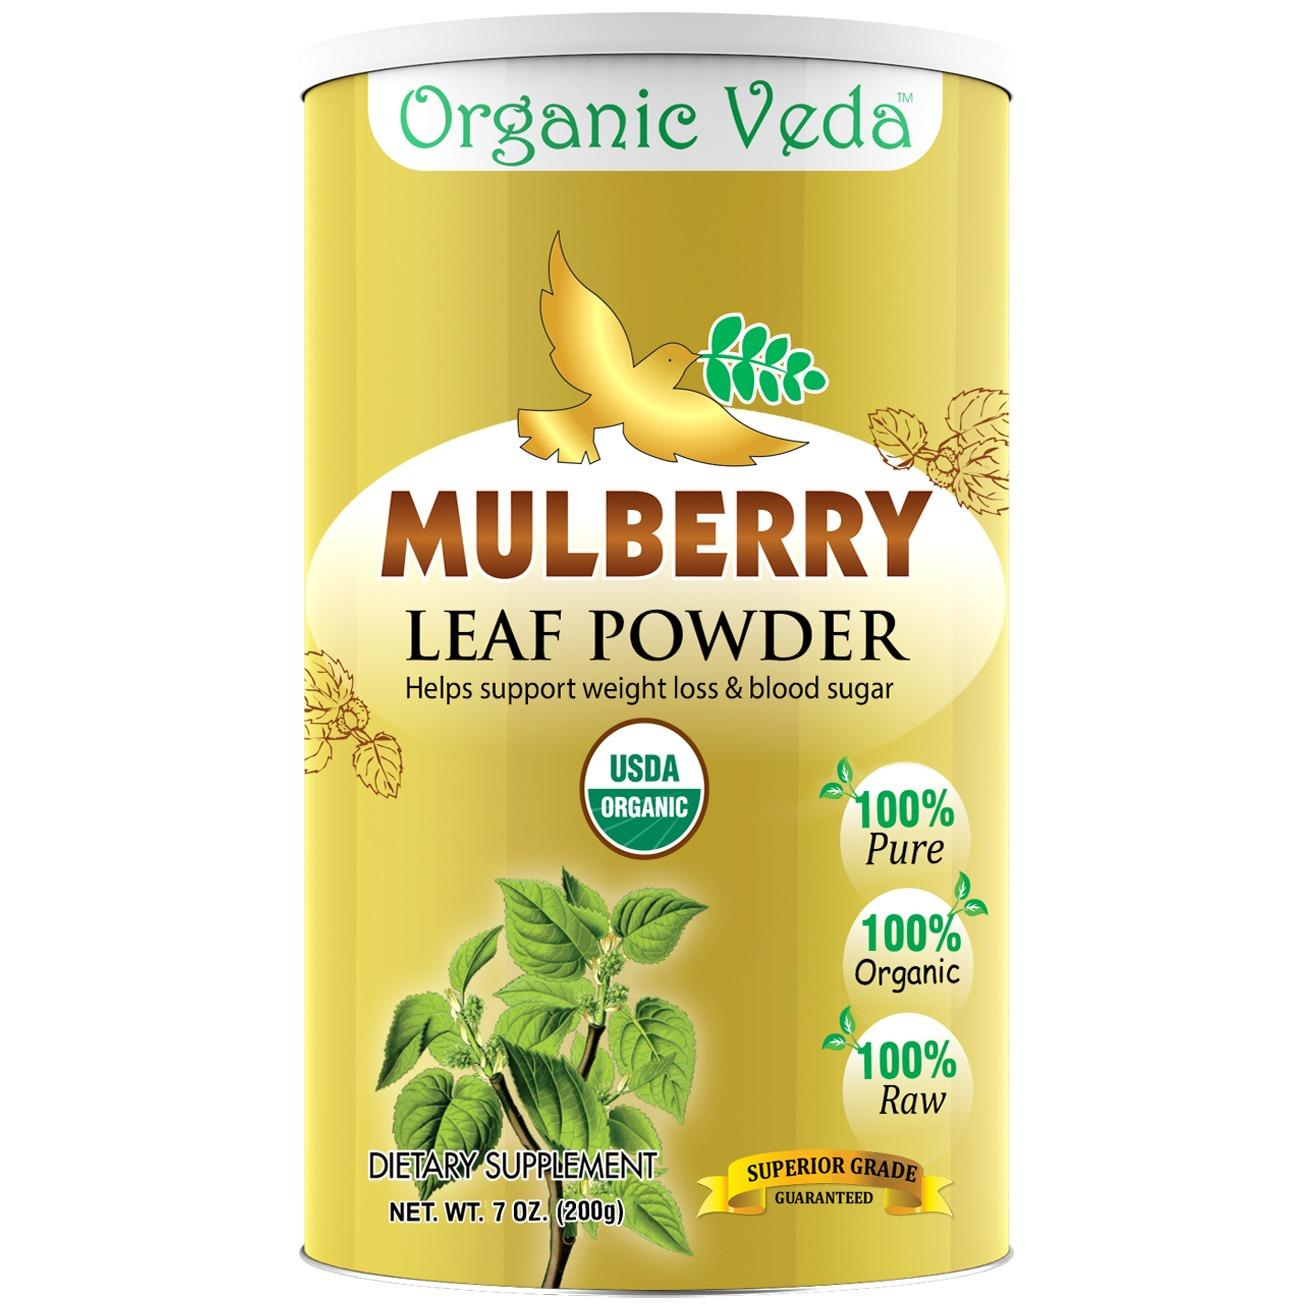 Cheaper Organic Mulberry Powder 200Grams 100 Pure And Natural Herbs Raw Organic Super Food Supplement Non Gmo Gluten Free Us Fda Registered Facility ★ Usda Certified Organic ★ All Natural